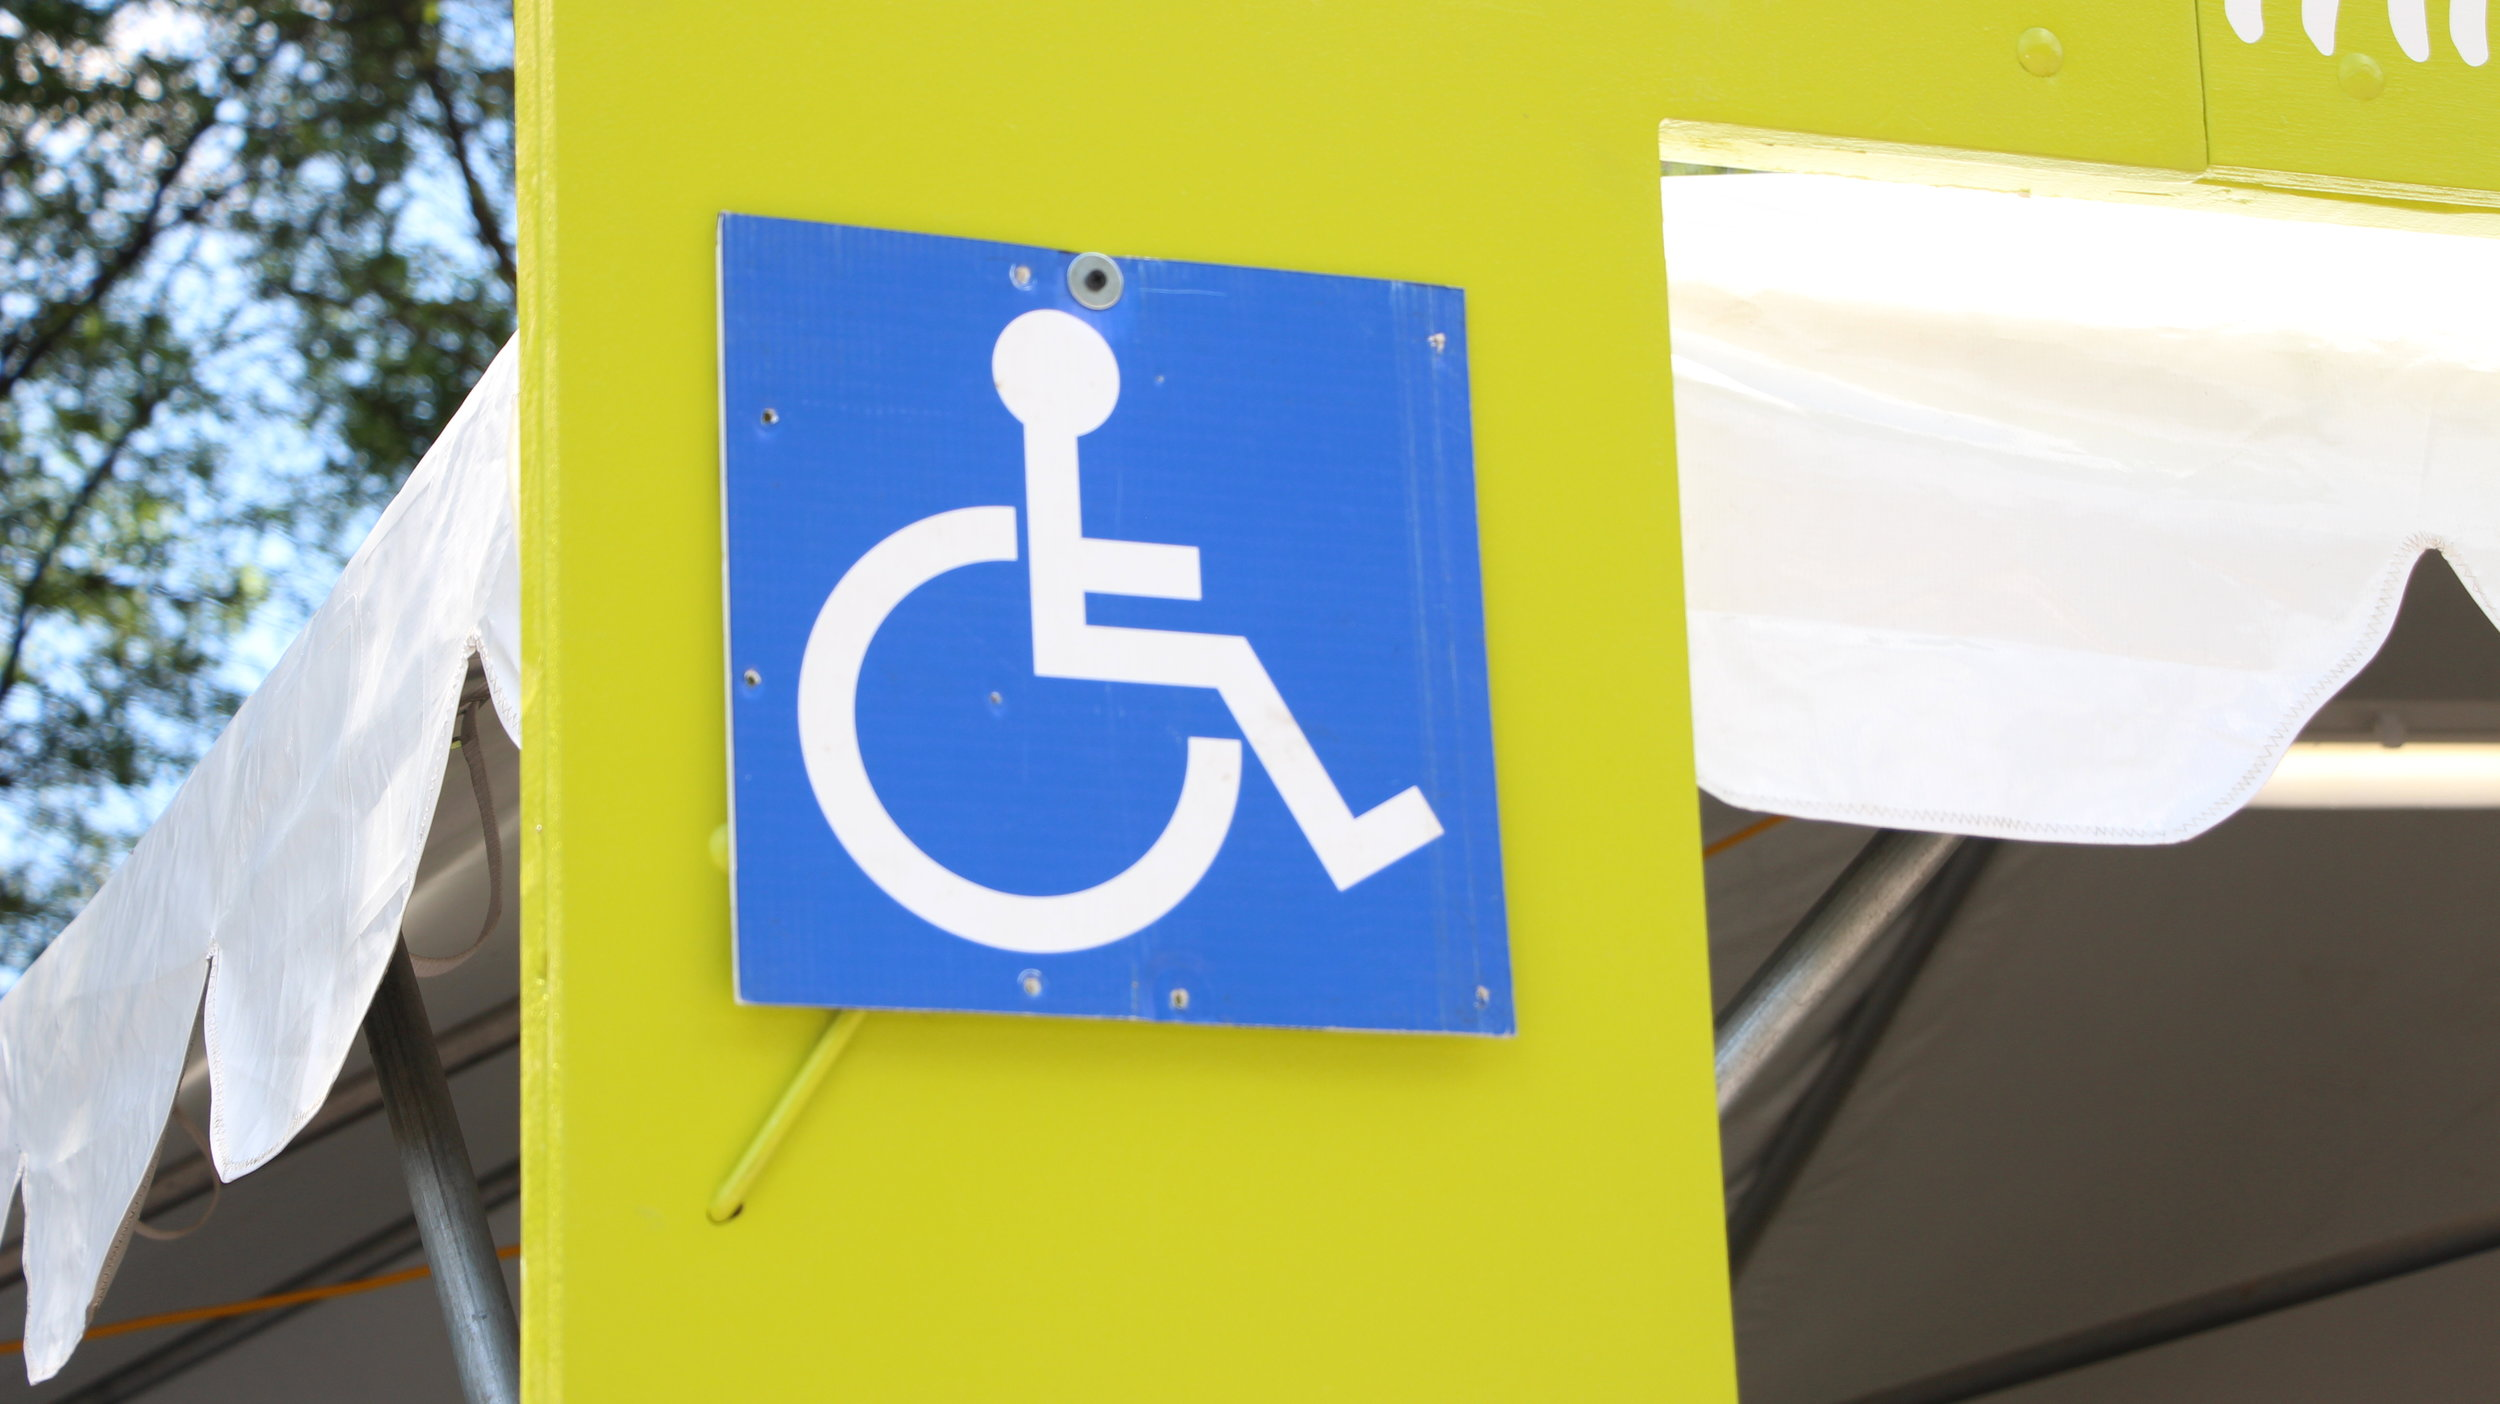 At the Taste of Chicago, these wheelchair-accessible signs are required for five-day vendors. Photo by Maia McDonald